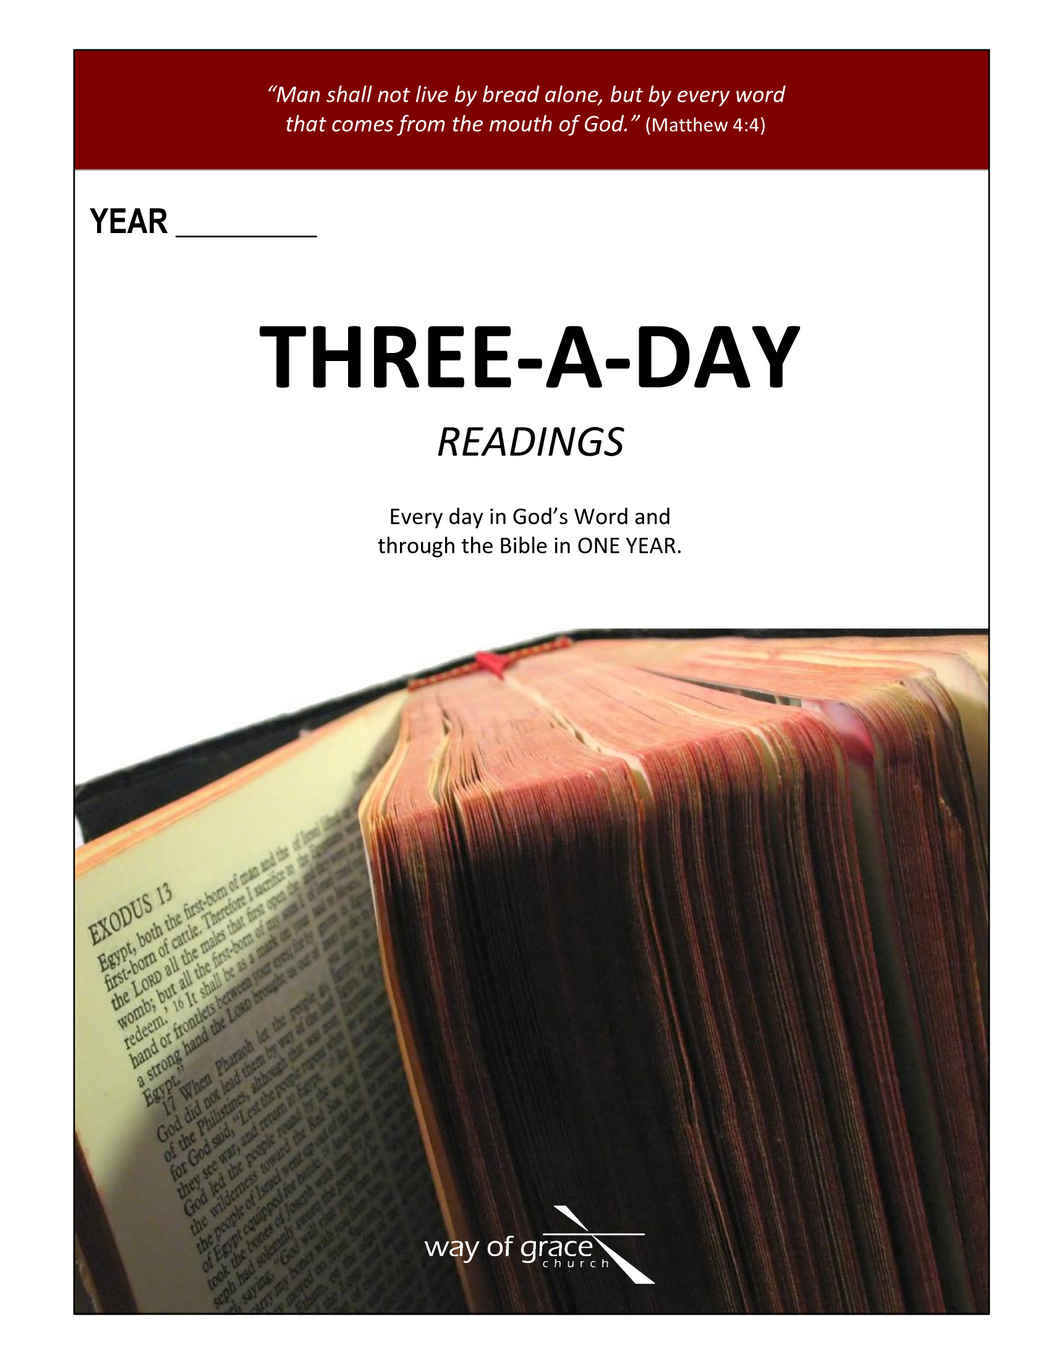 Three-a-Day Calendar Cover